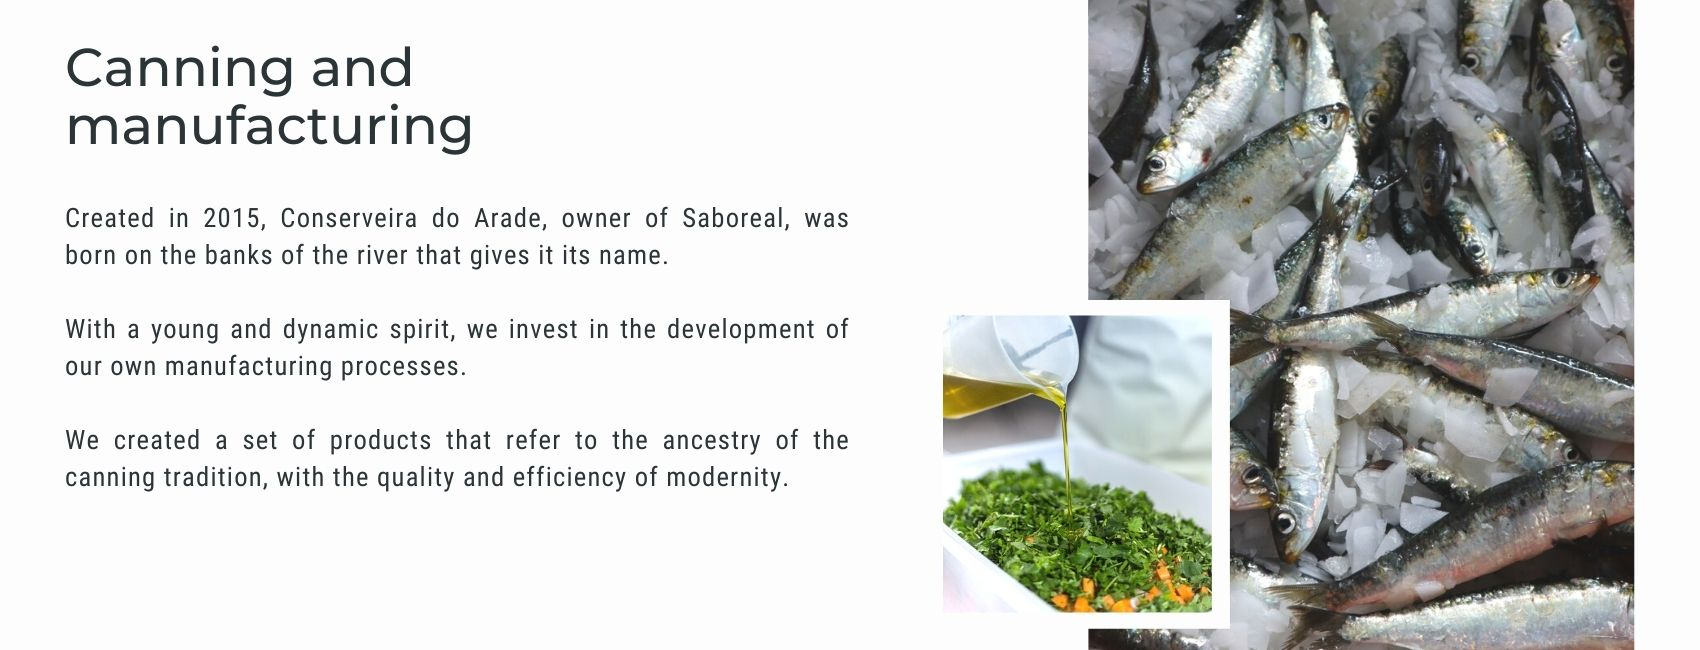 Created in 2015, Conserveira do Arade, owner of Saboreal, was born on the banks of the river that gives it its name.  With a young and dynamic spirit, we invest in the development of our own manufacturing processes.  We created a set of products that refer to the ancestry of the canning tradition, with the quality and efficiency of modernity.